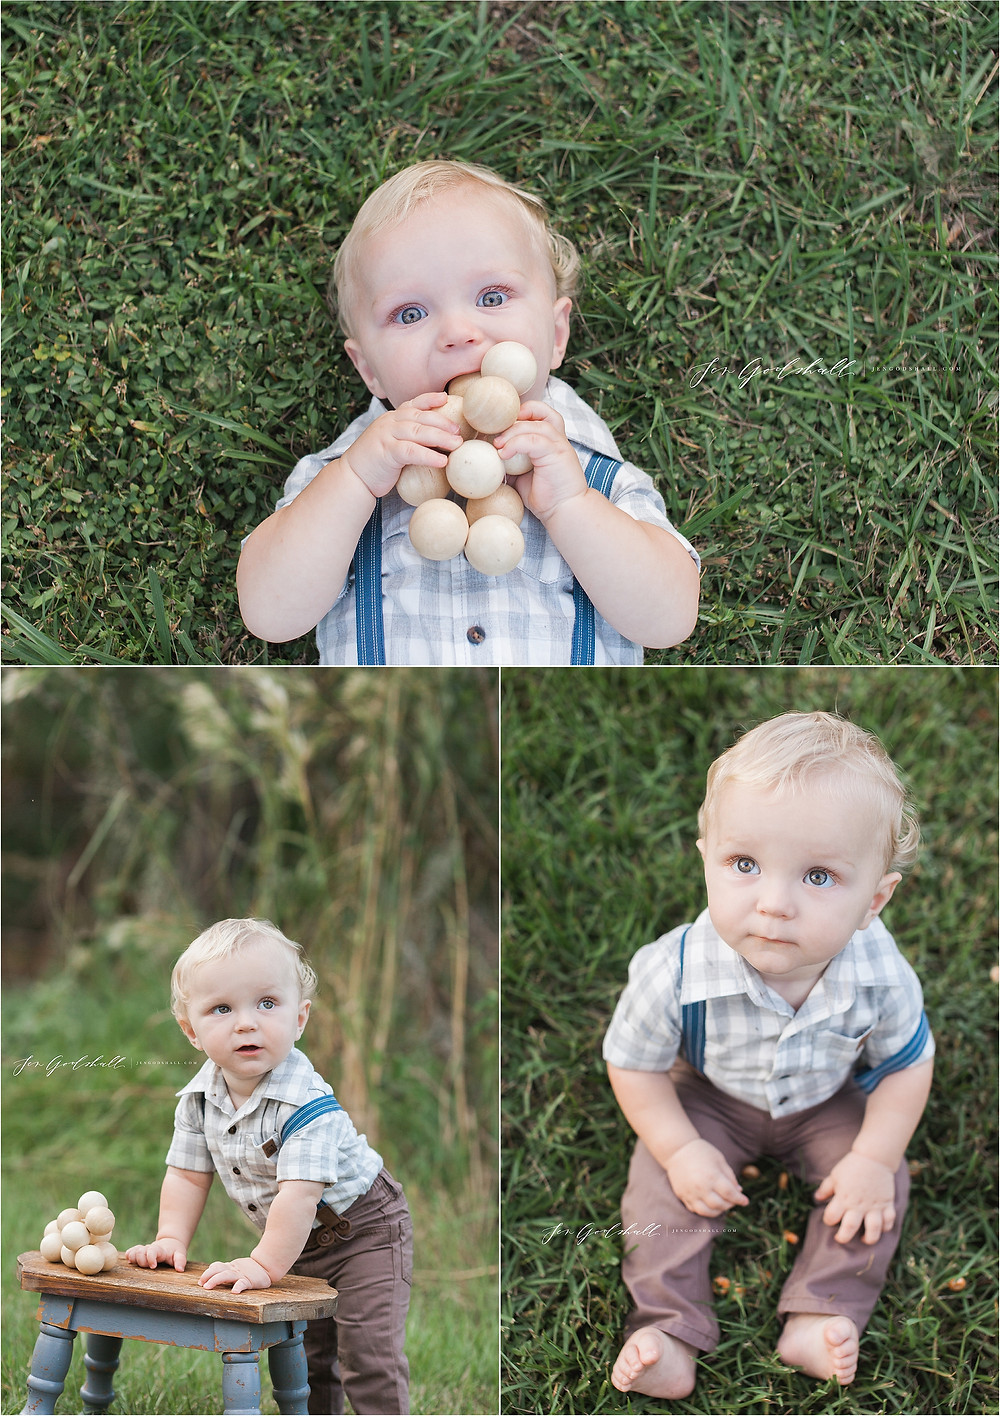 Toddler in suspenders sitting in grass in Sarasota Florida family photographer